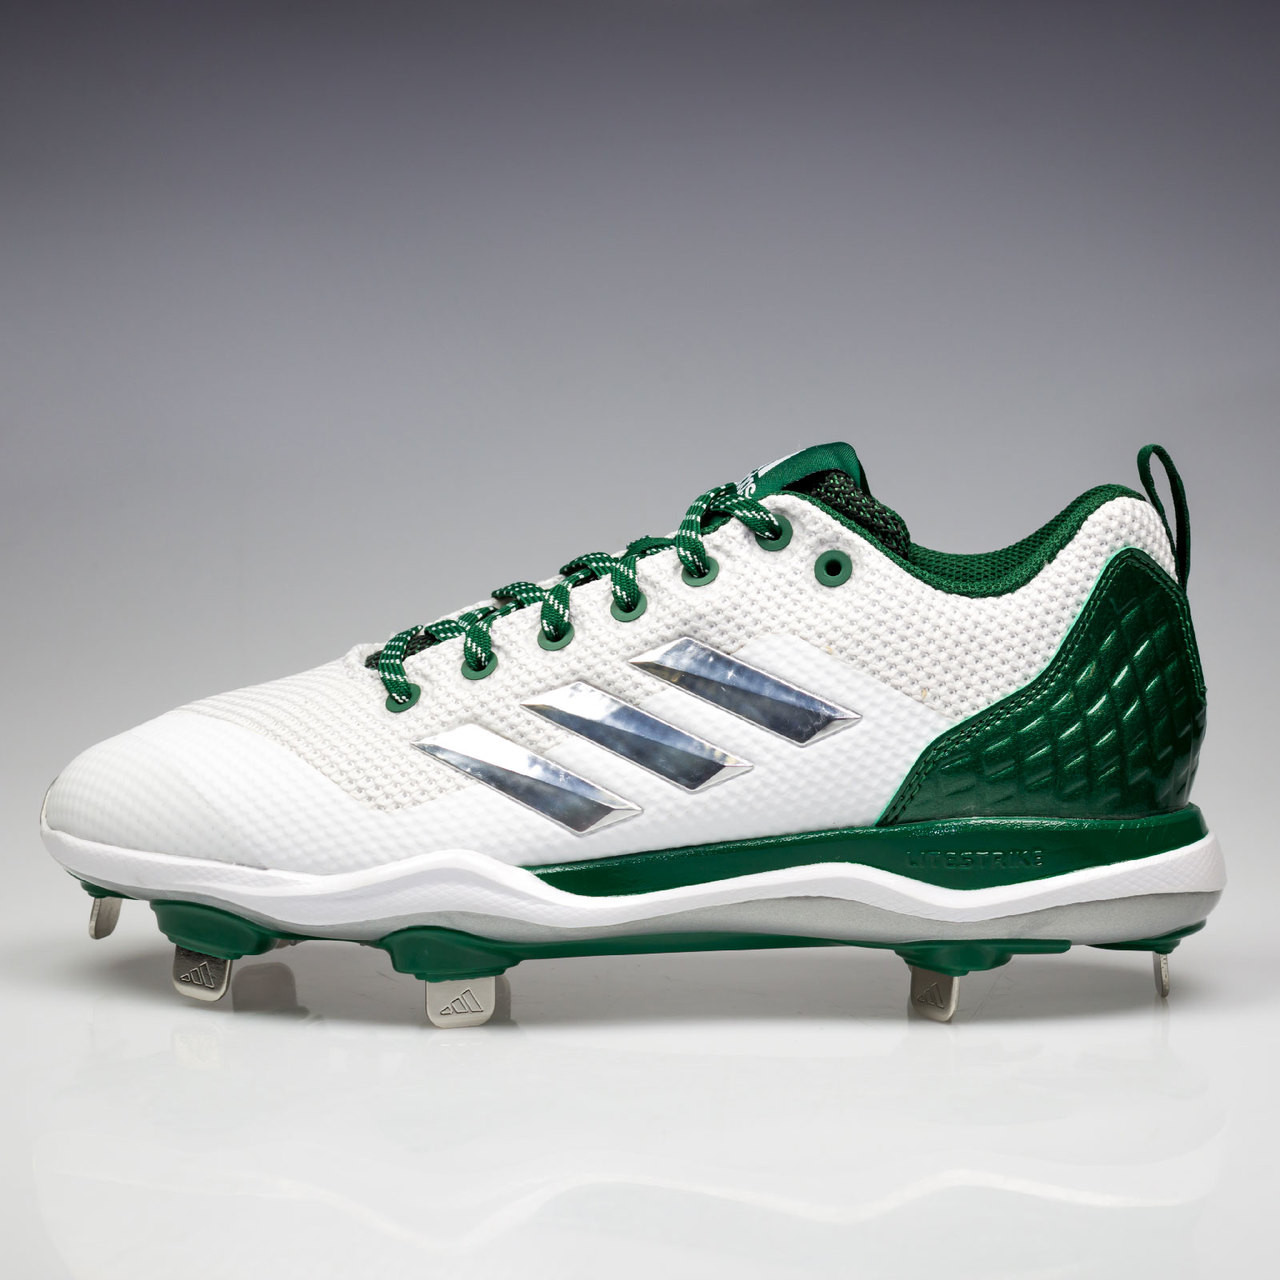 84d796fdcaec Adidas Power Alley 5 Cleats | Men's Baseball Cleats for Sale